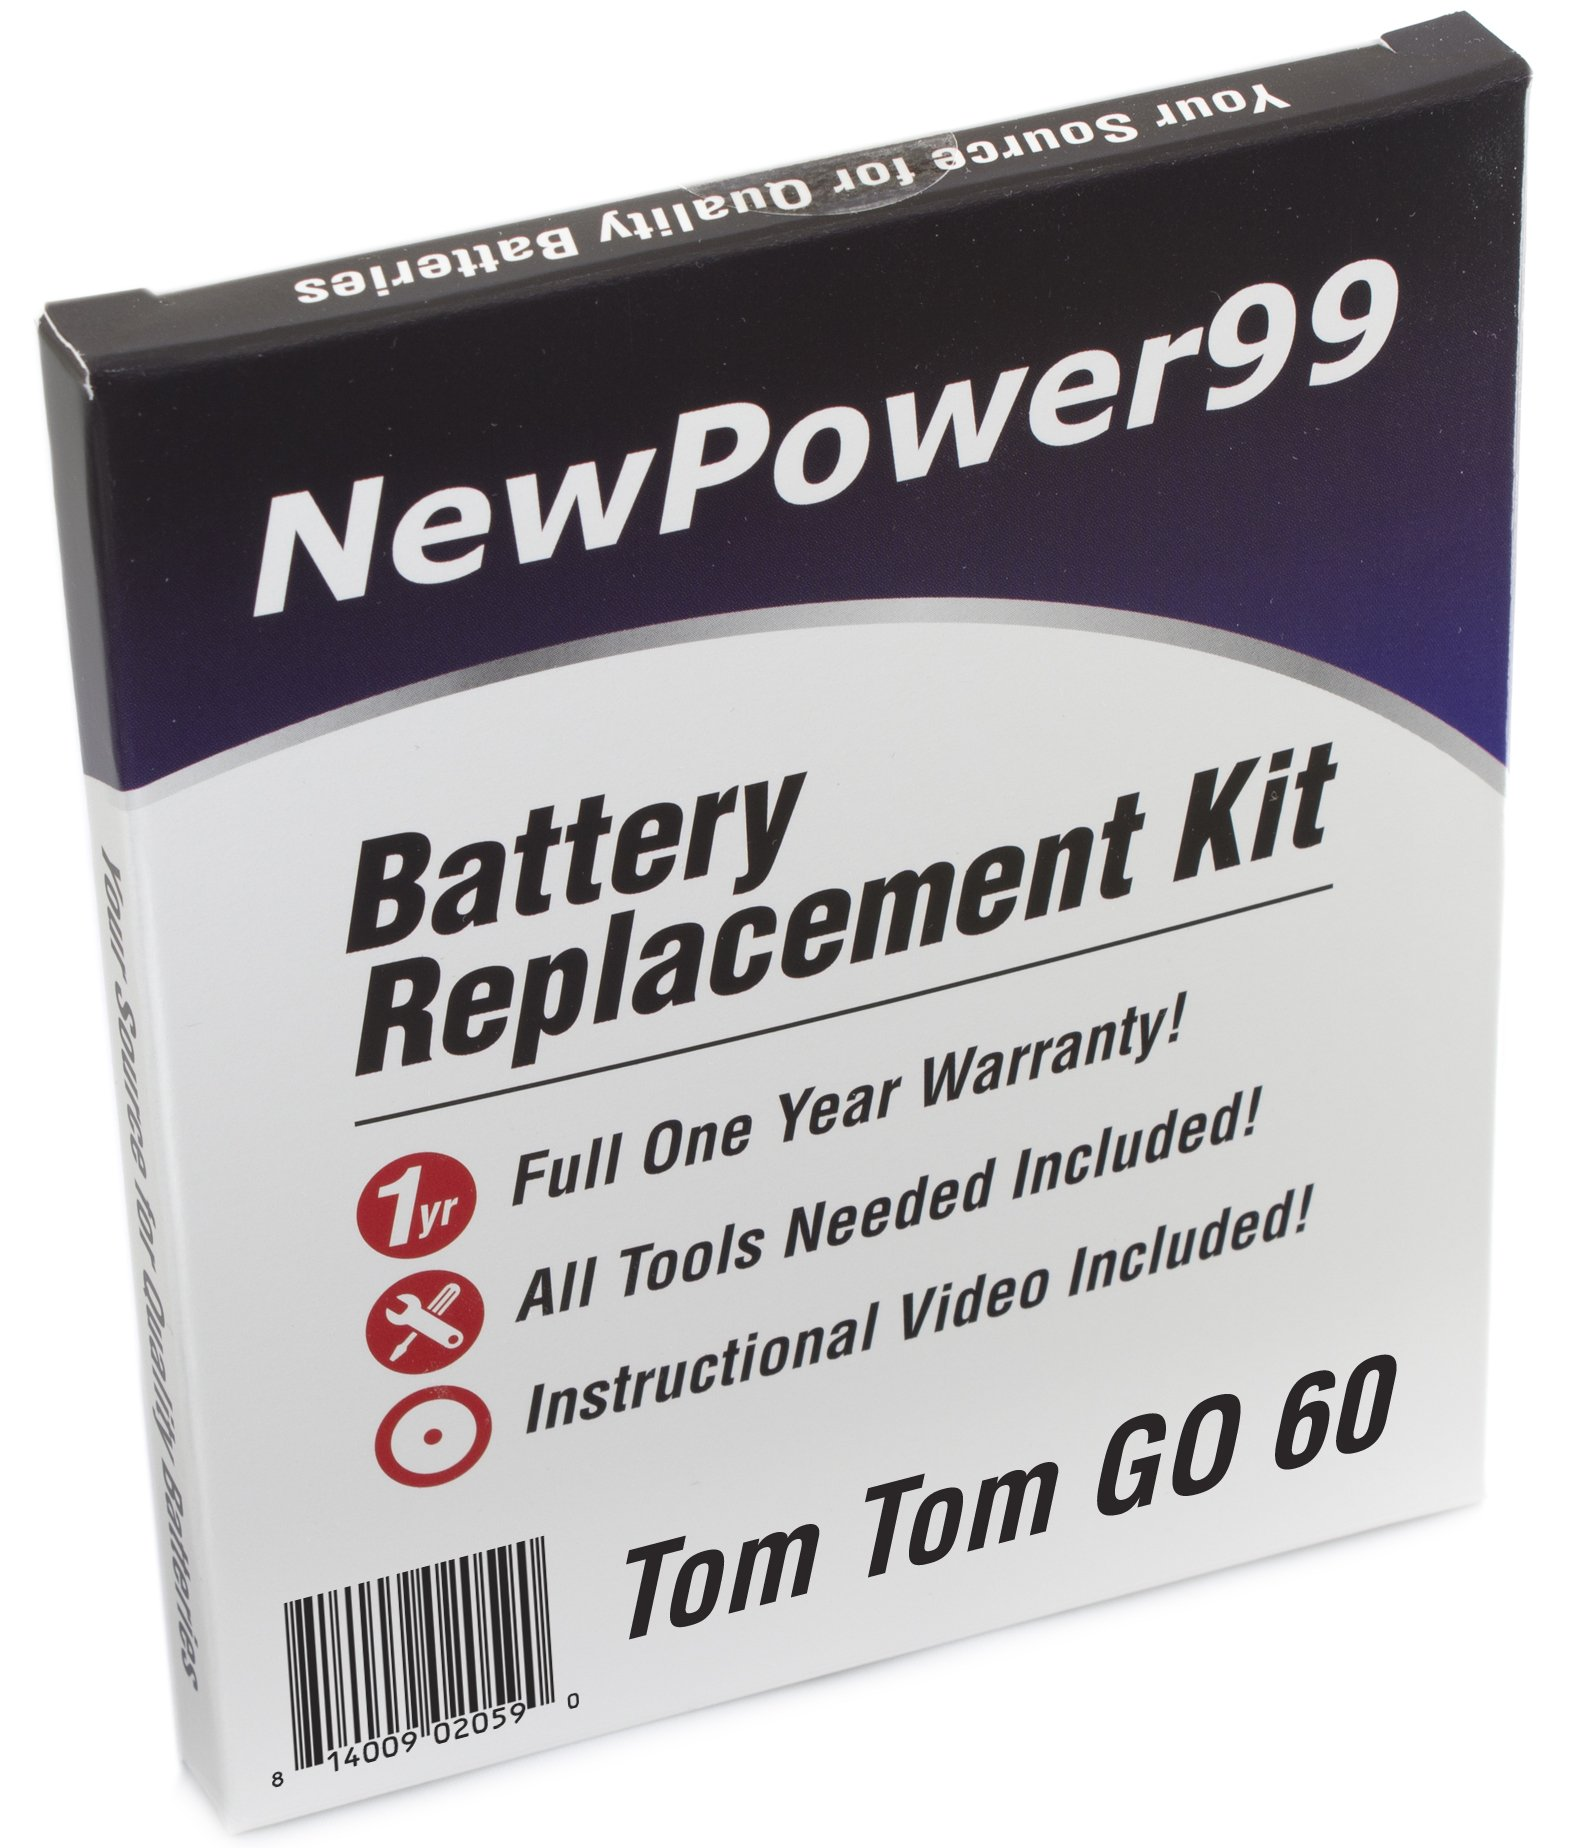 TomTom GO 60 Battery Replacement Kit with Installation Video, Tools, and Extended Life Battery.